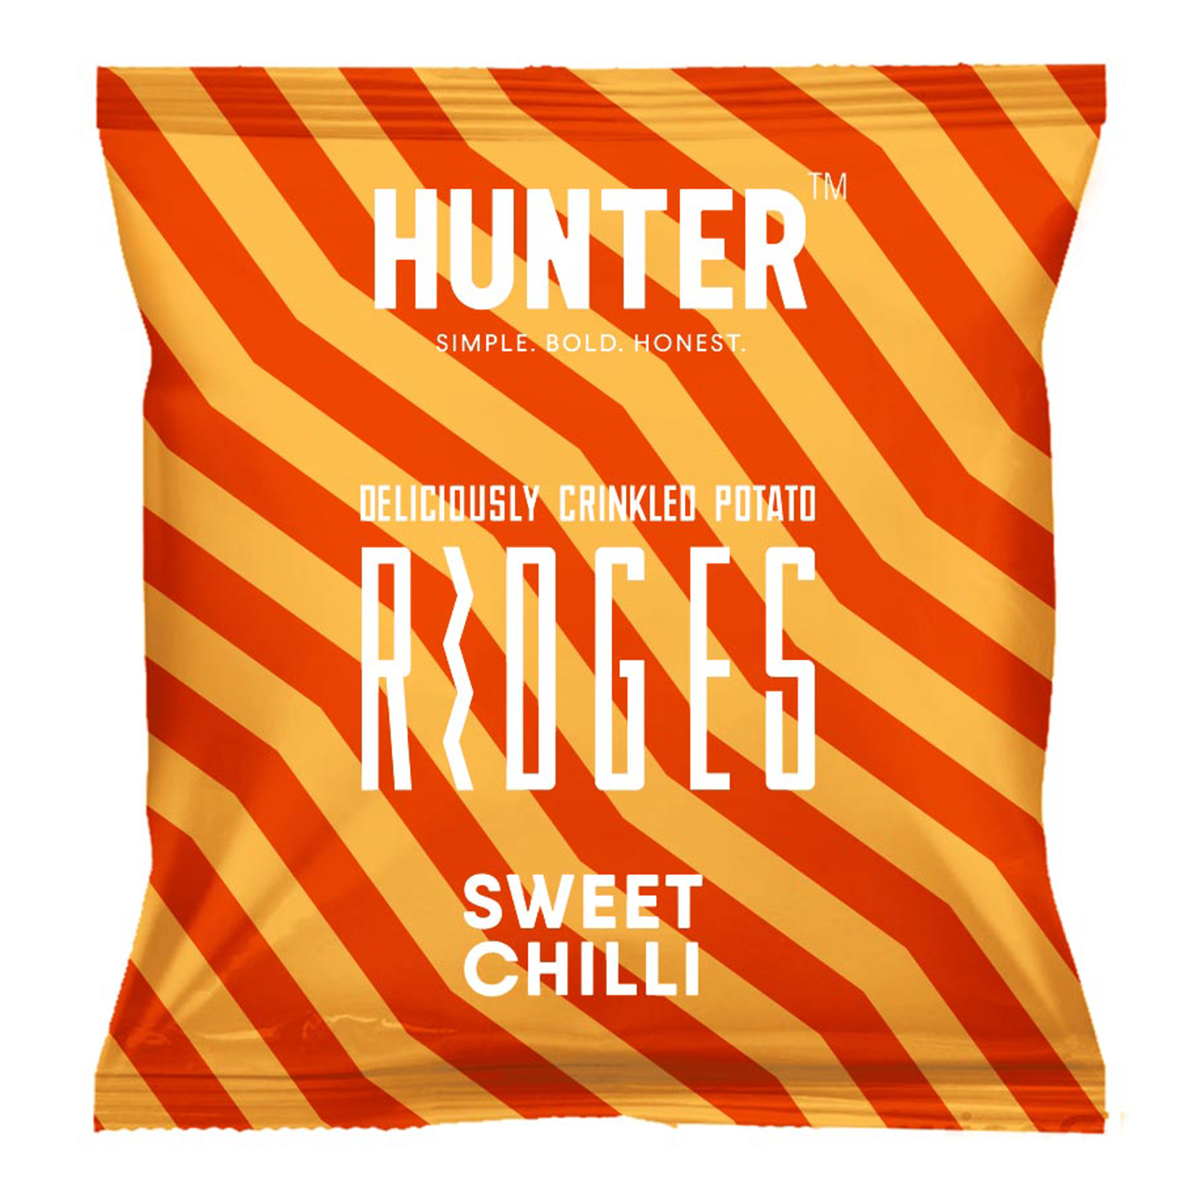 Deliciously Crinkled Potato Ridges - Sweet Chilli (40gm)